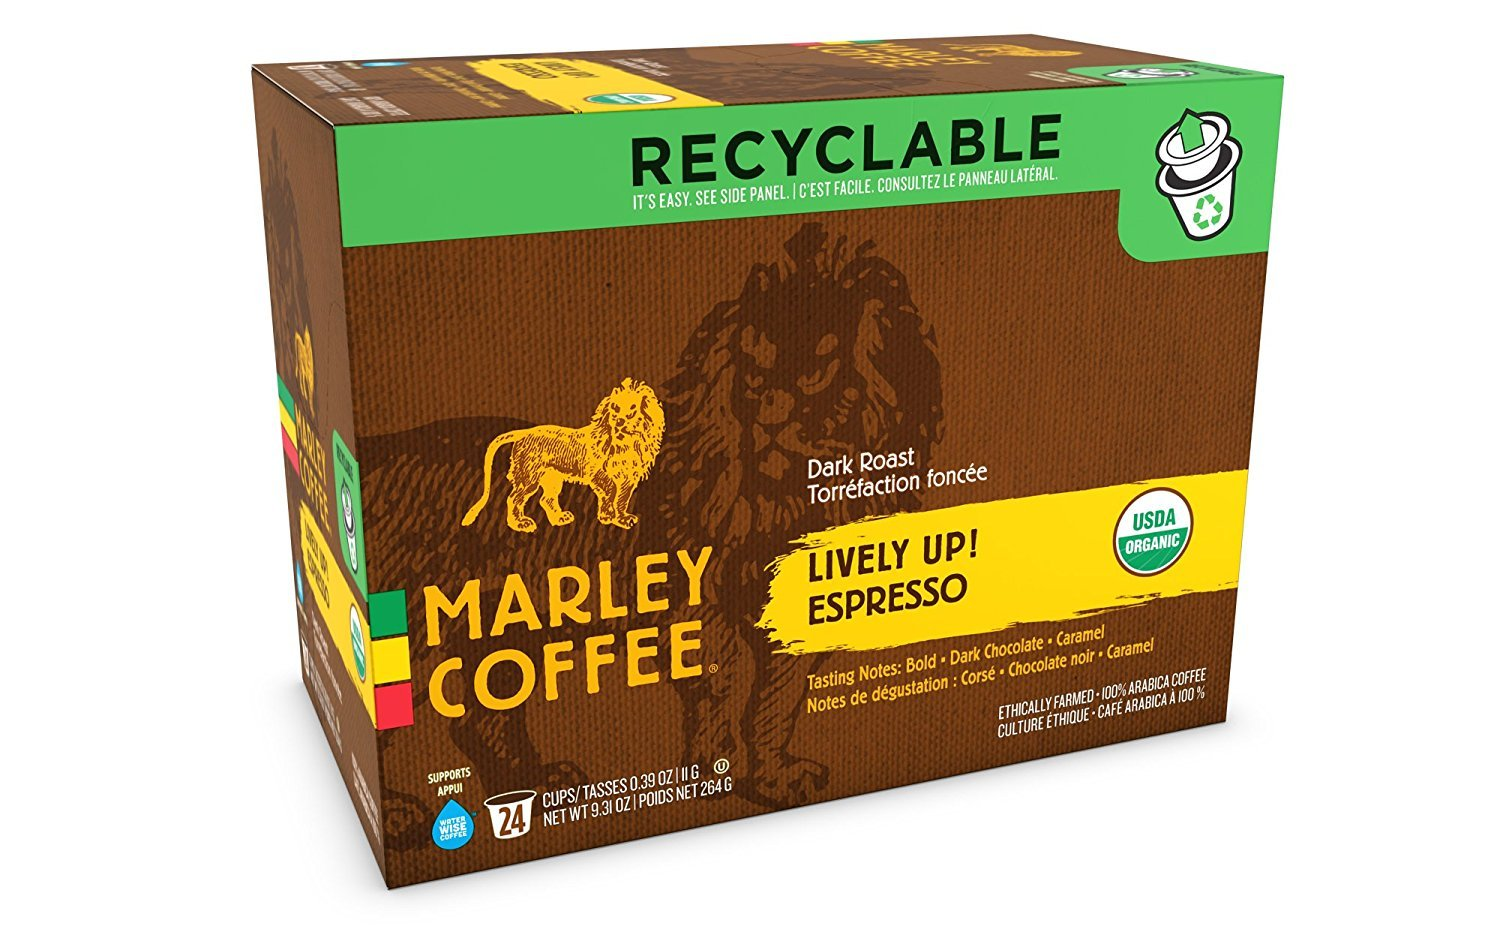 Marley Coffee Lively Up Single Serve Coffee (24 Pack)